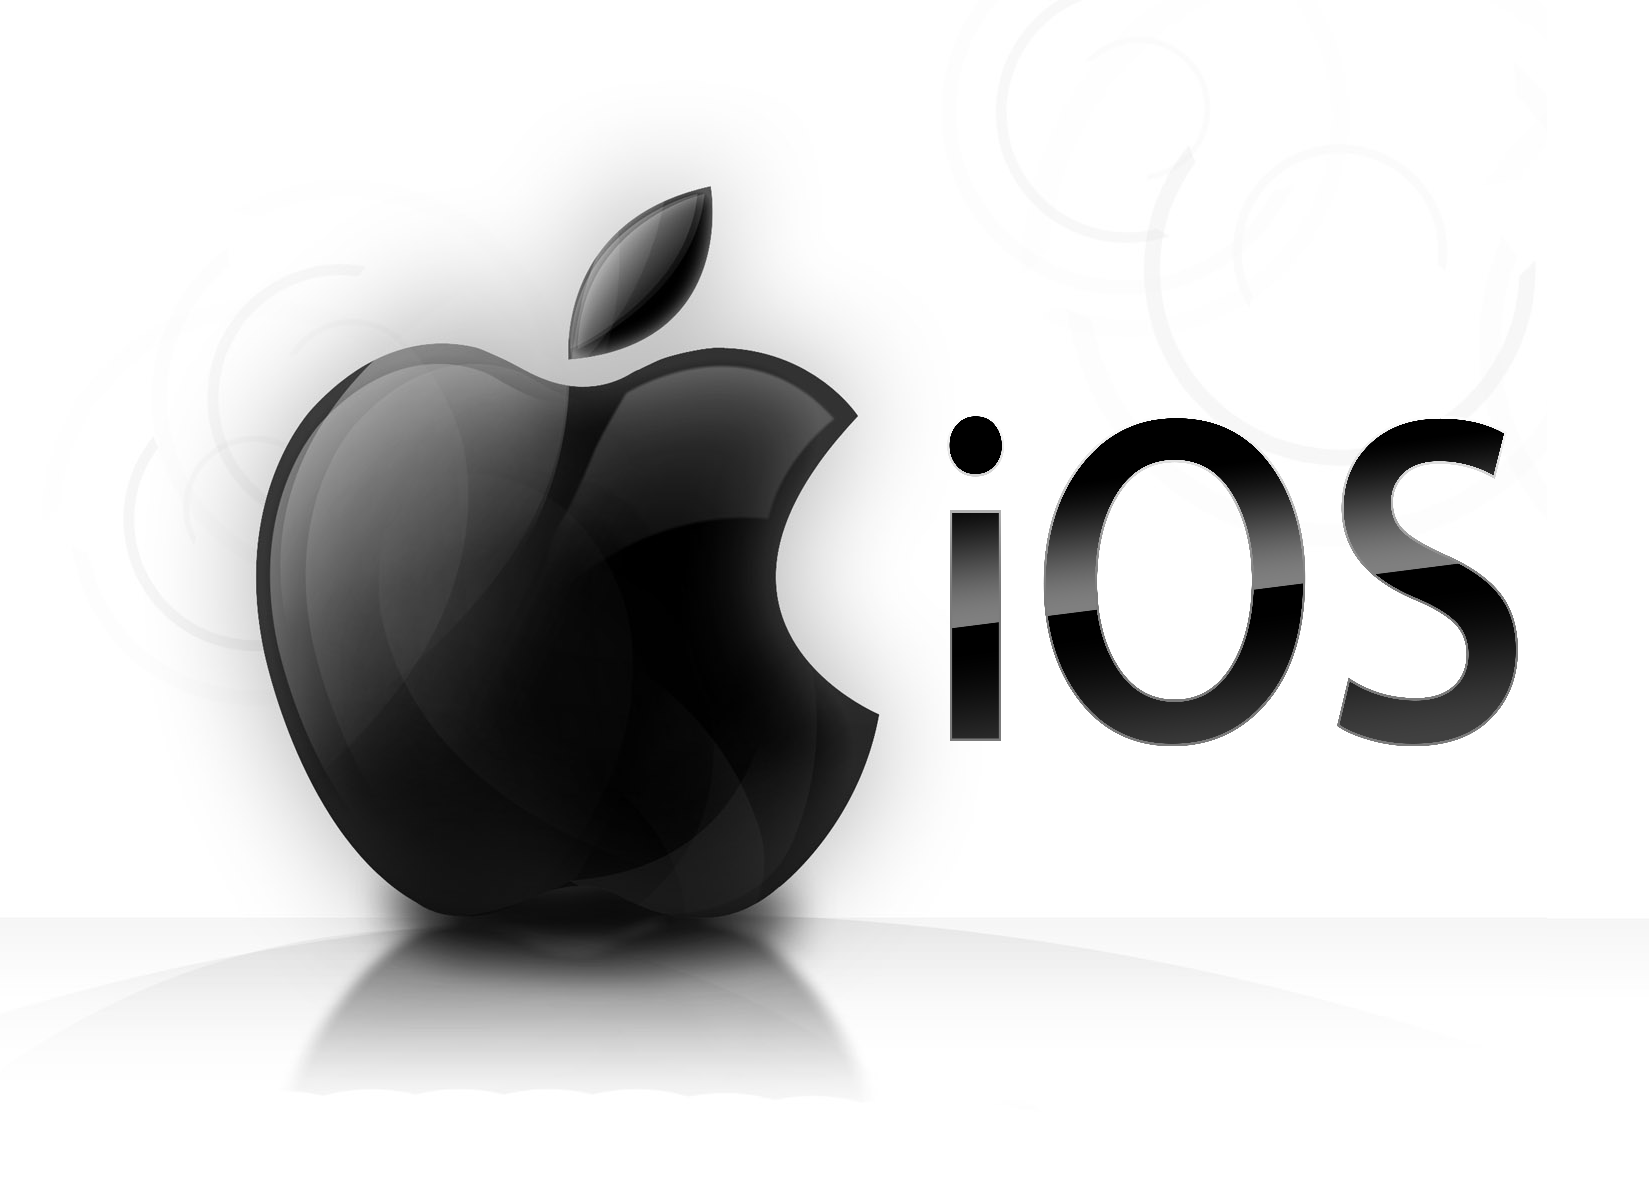 apple-iOS-logo 600